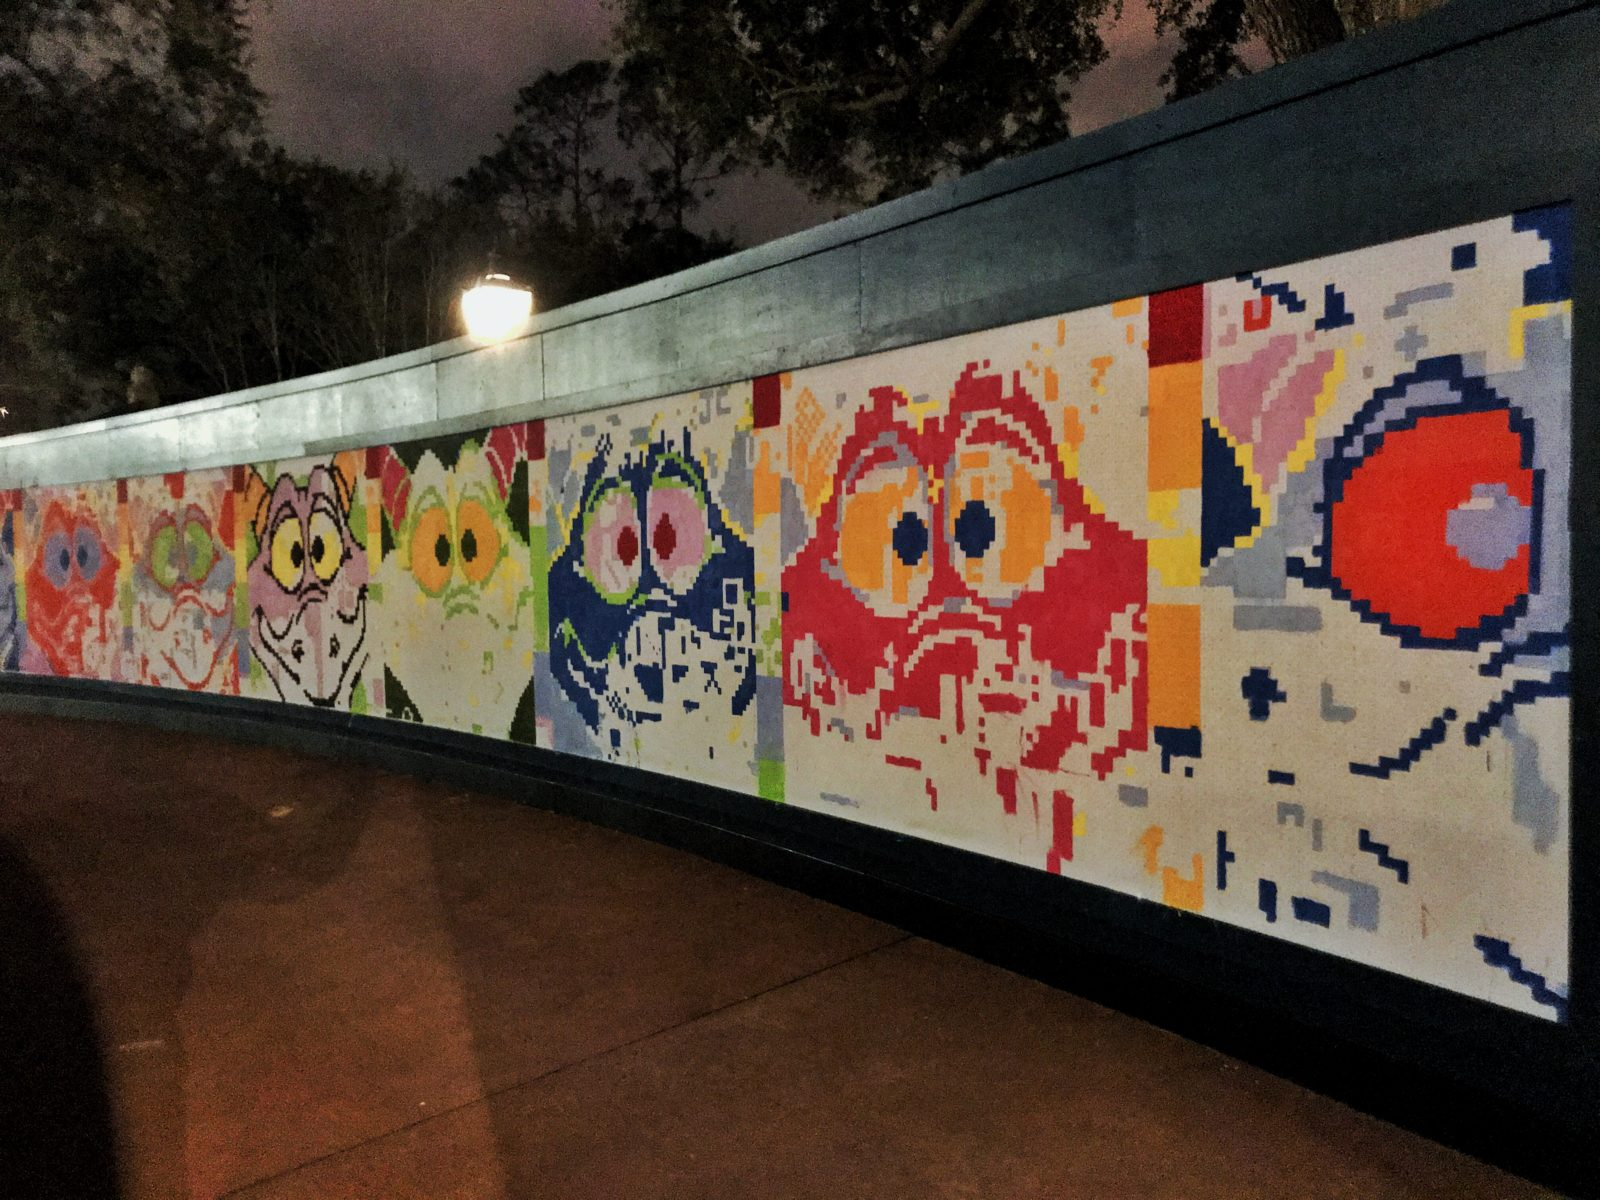 Epcot International Festival of the Arts 2019 - Mural